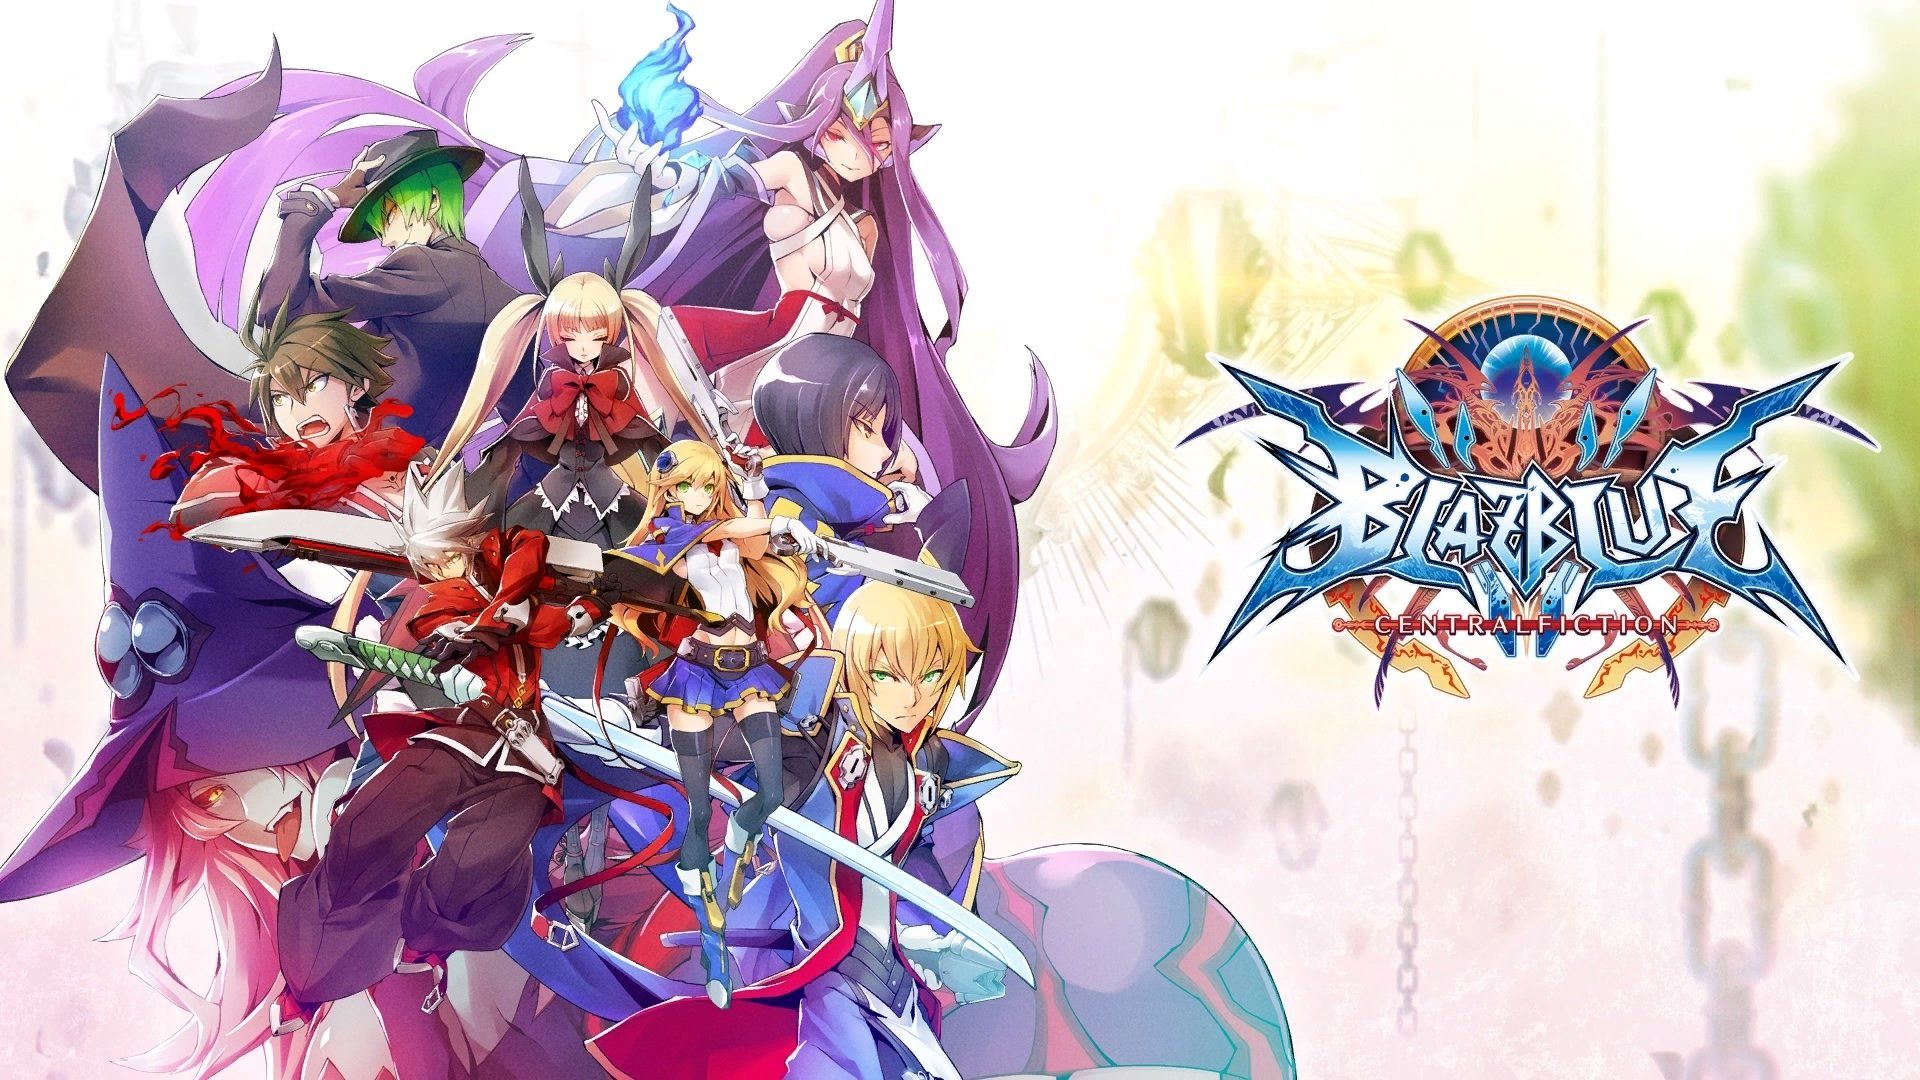 1920x1080 Blazblue Centralfiction Wallpaper Background Image View Download Comment And Rate Wallpaper A Wallpaper Backgrounds Background Images Wallpaper